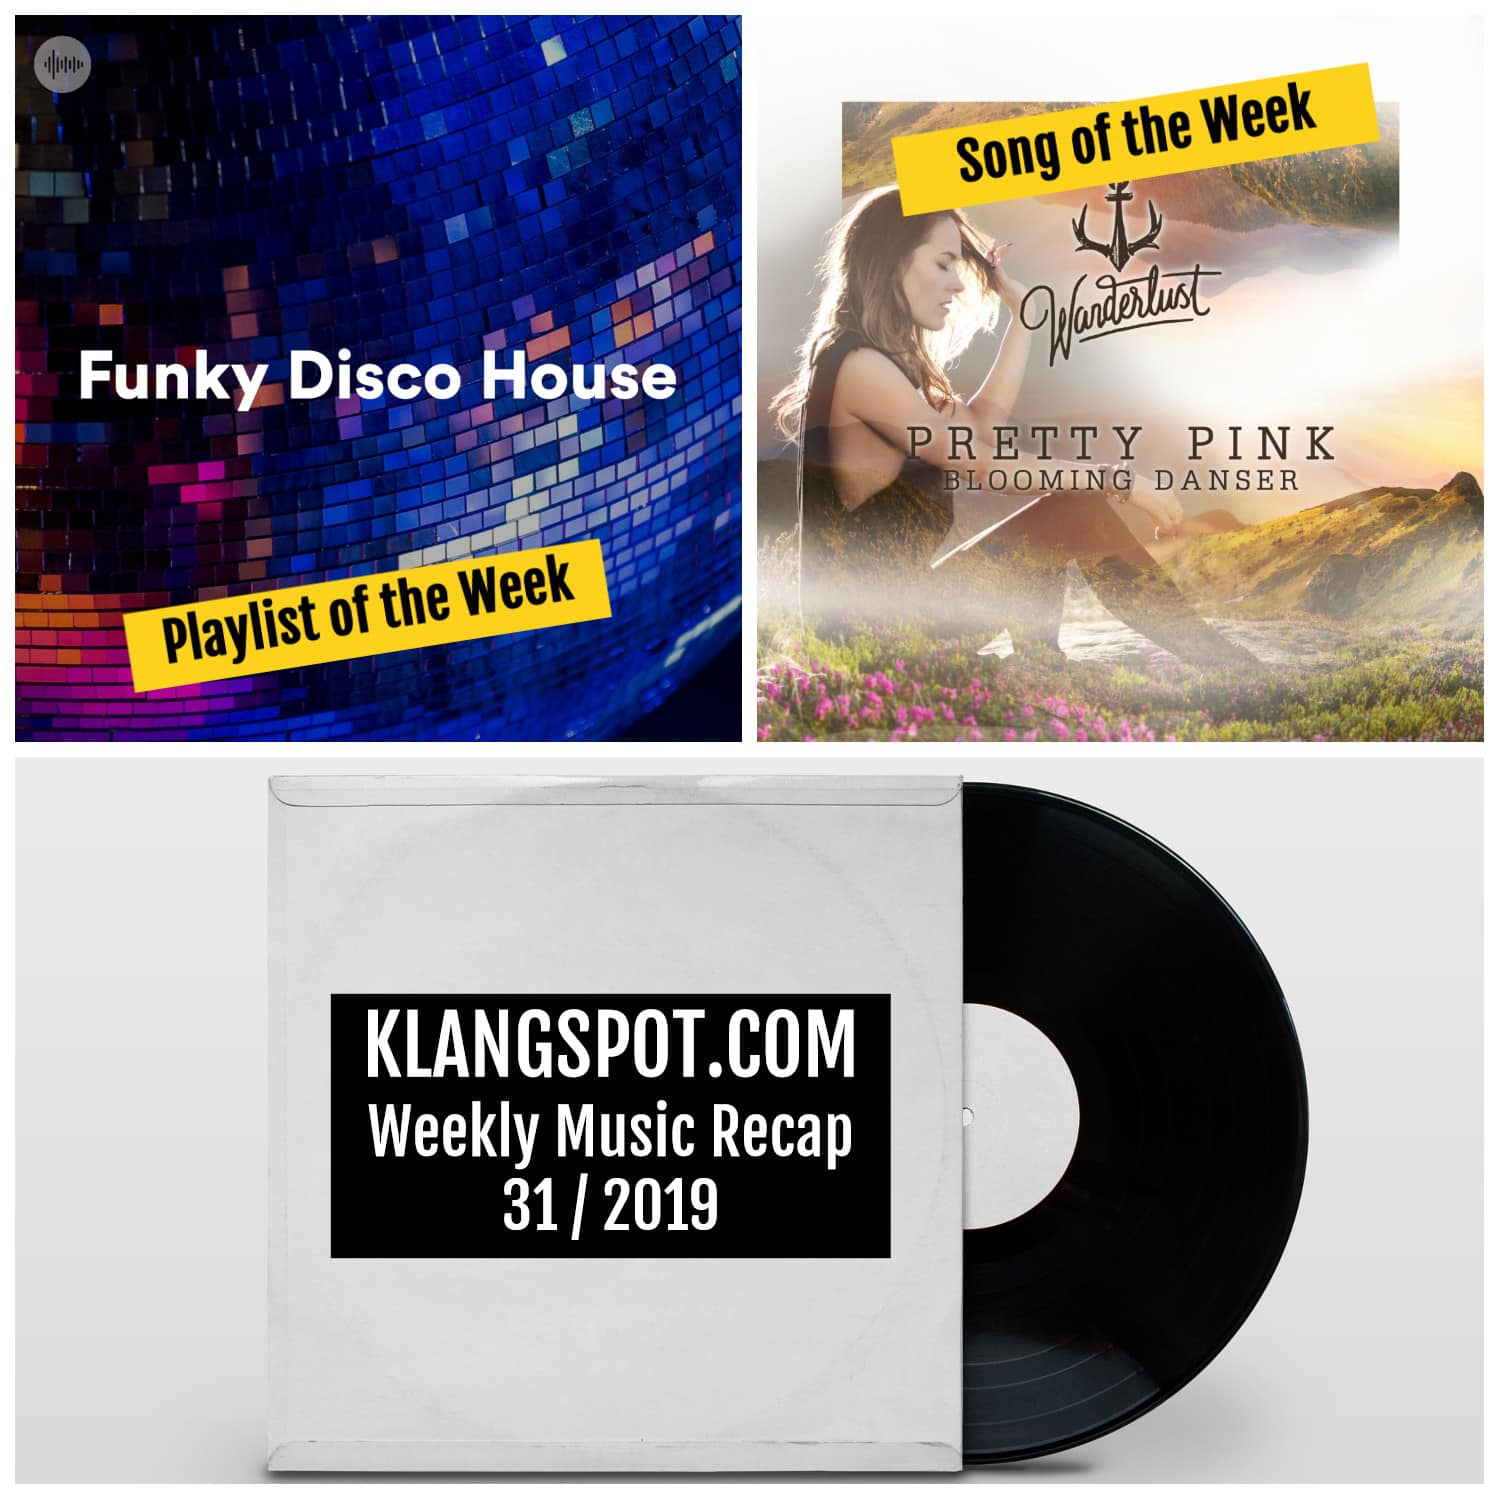 Weekly Music Recap 31/2019: Funky Disco House / Pretty Pink - 'Danser'